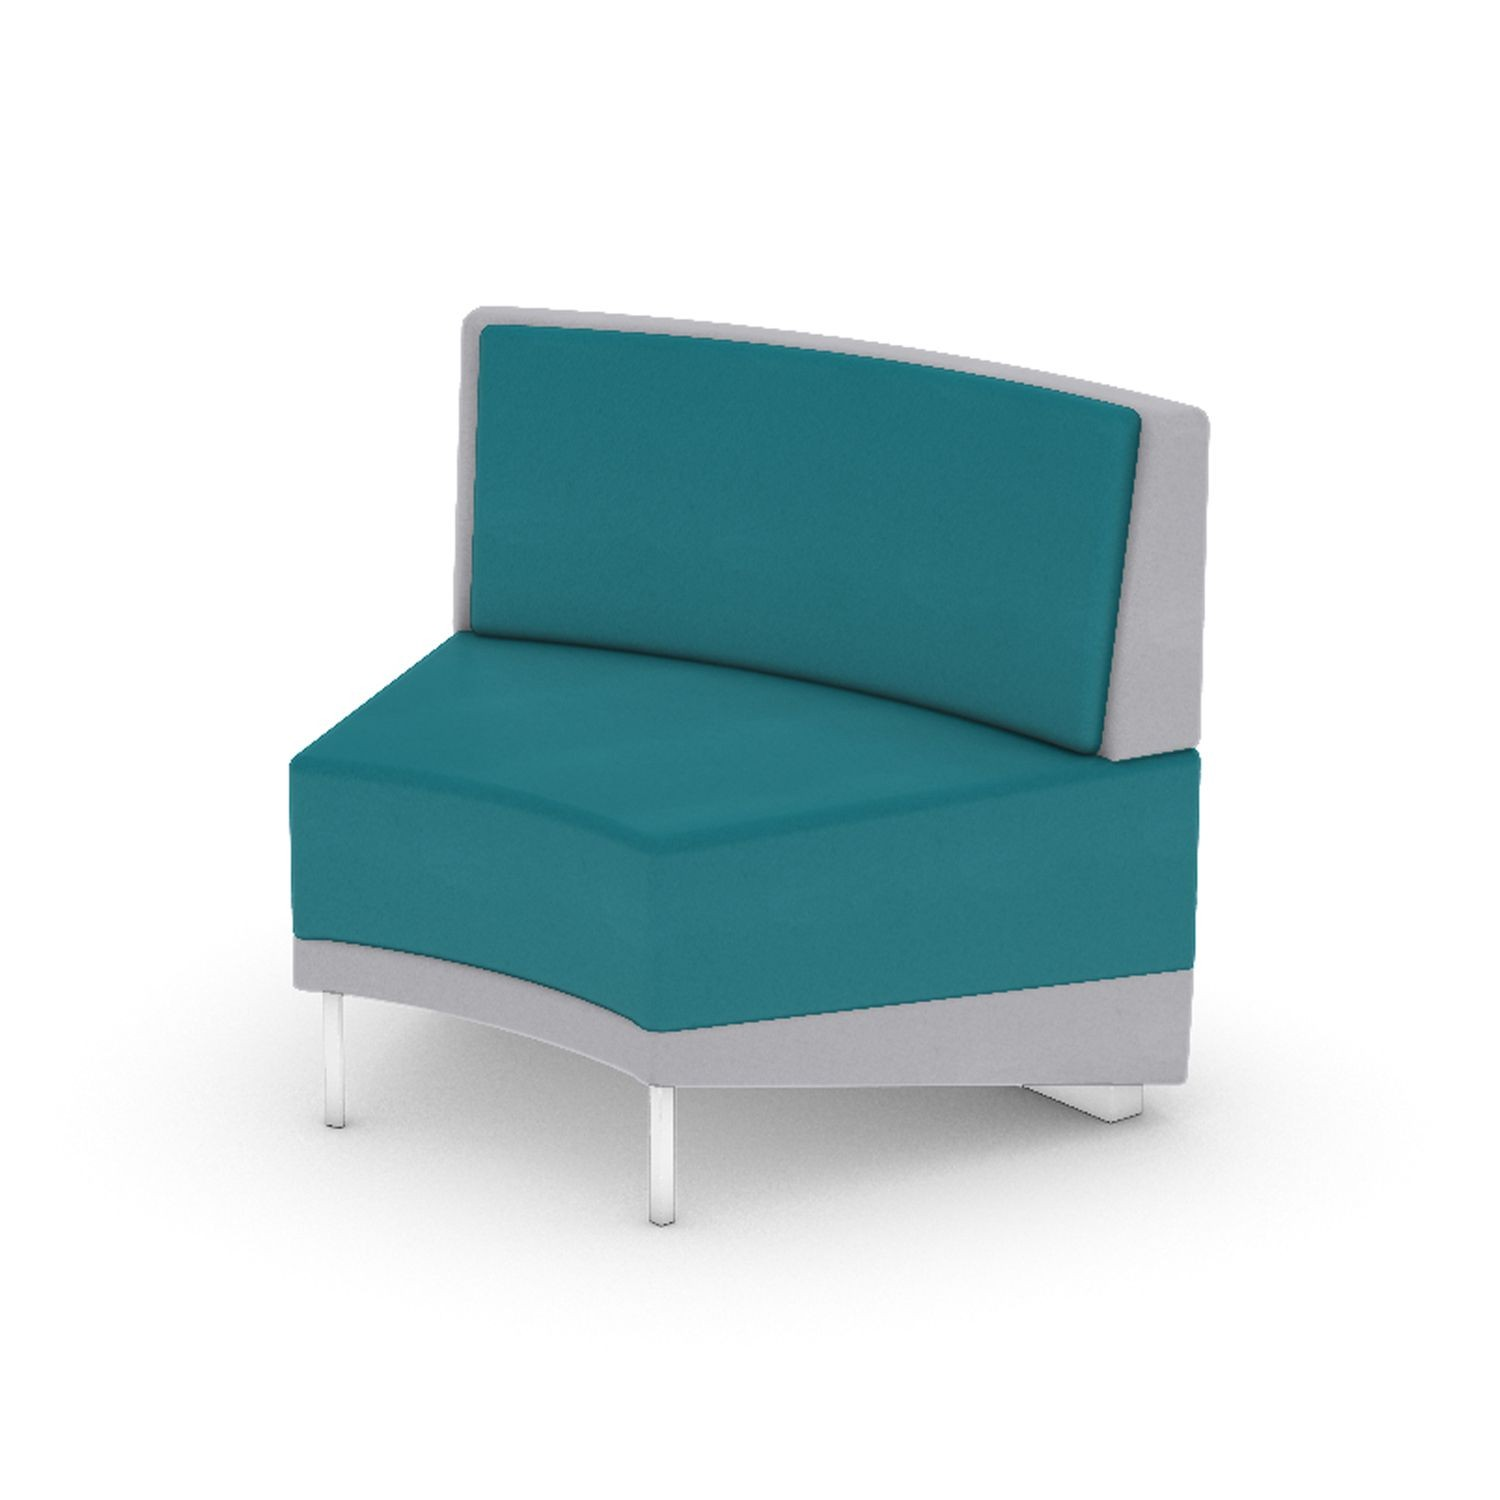 Soft Seating Mount 45 Degree Seating Unit